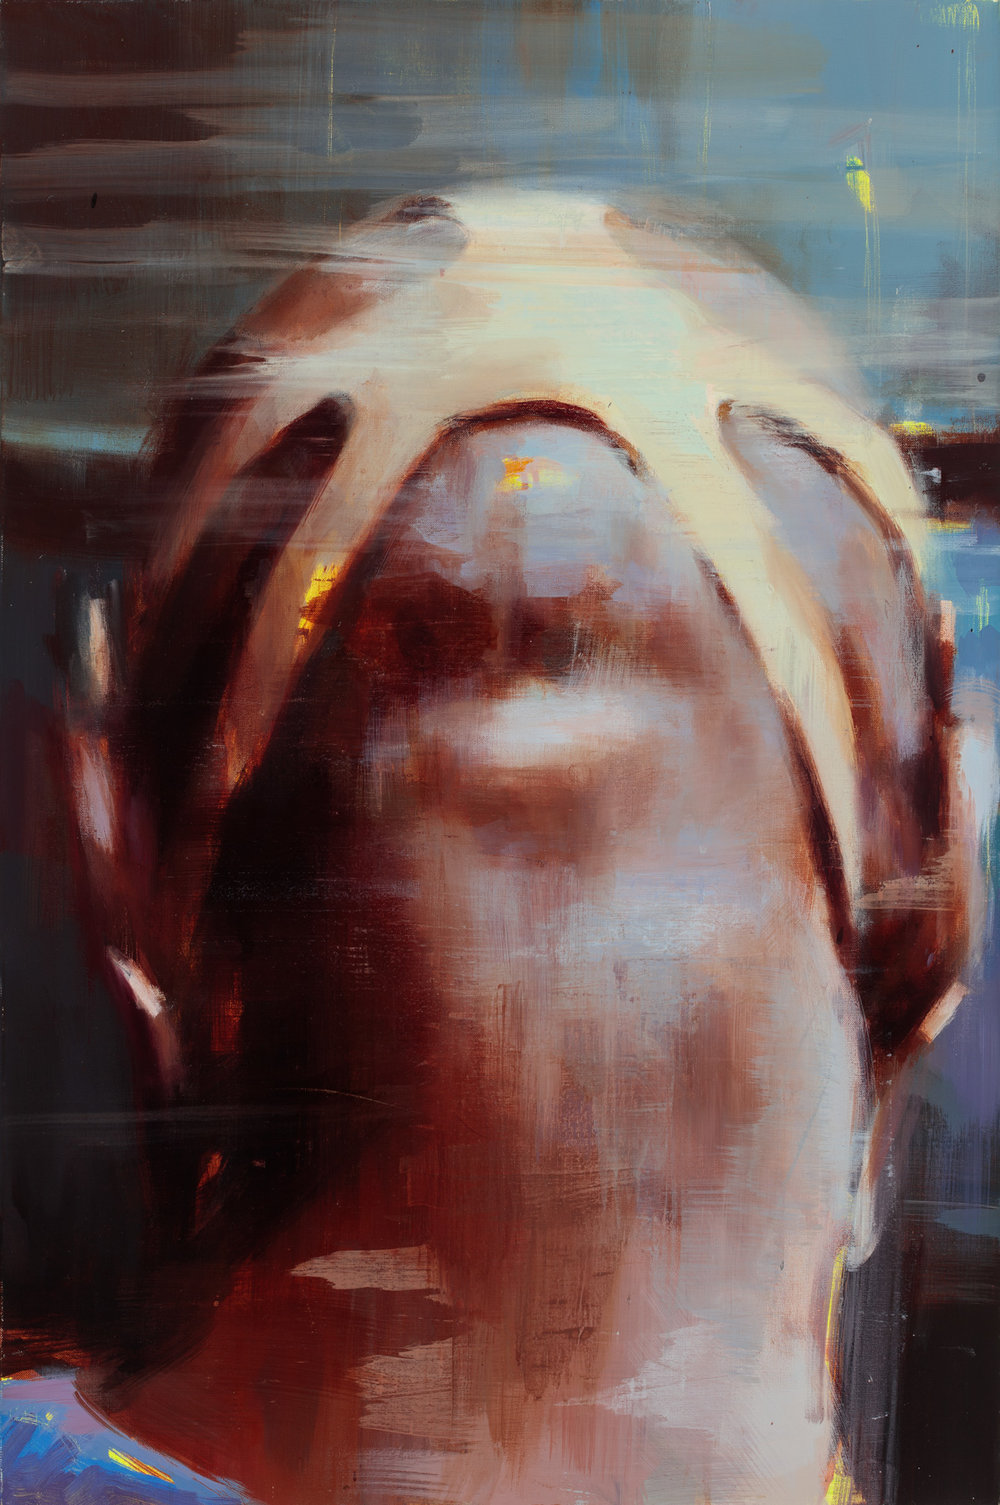 """"""" Back of a Protester's Head""""  2013, 36"""" x 24"""" (91 x 60 cm), oil on linen."""